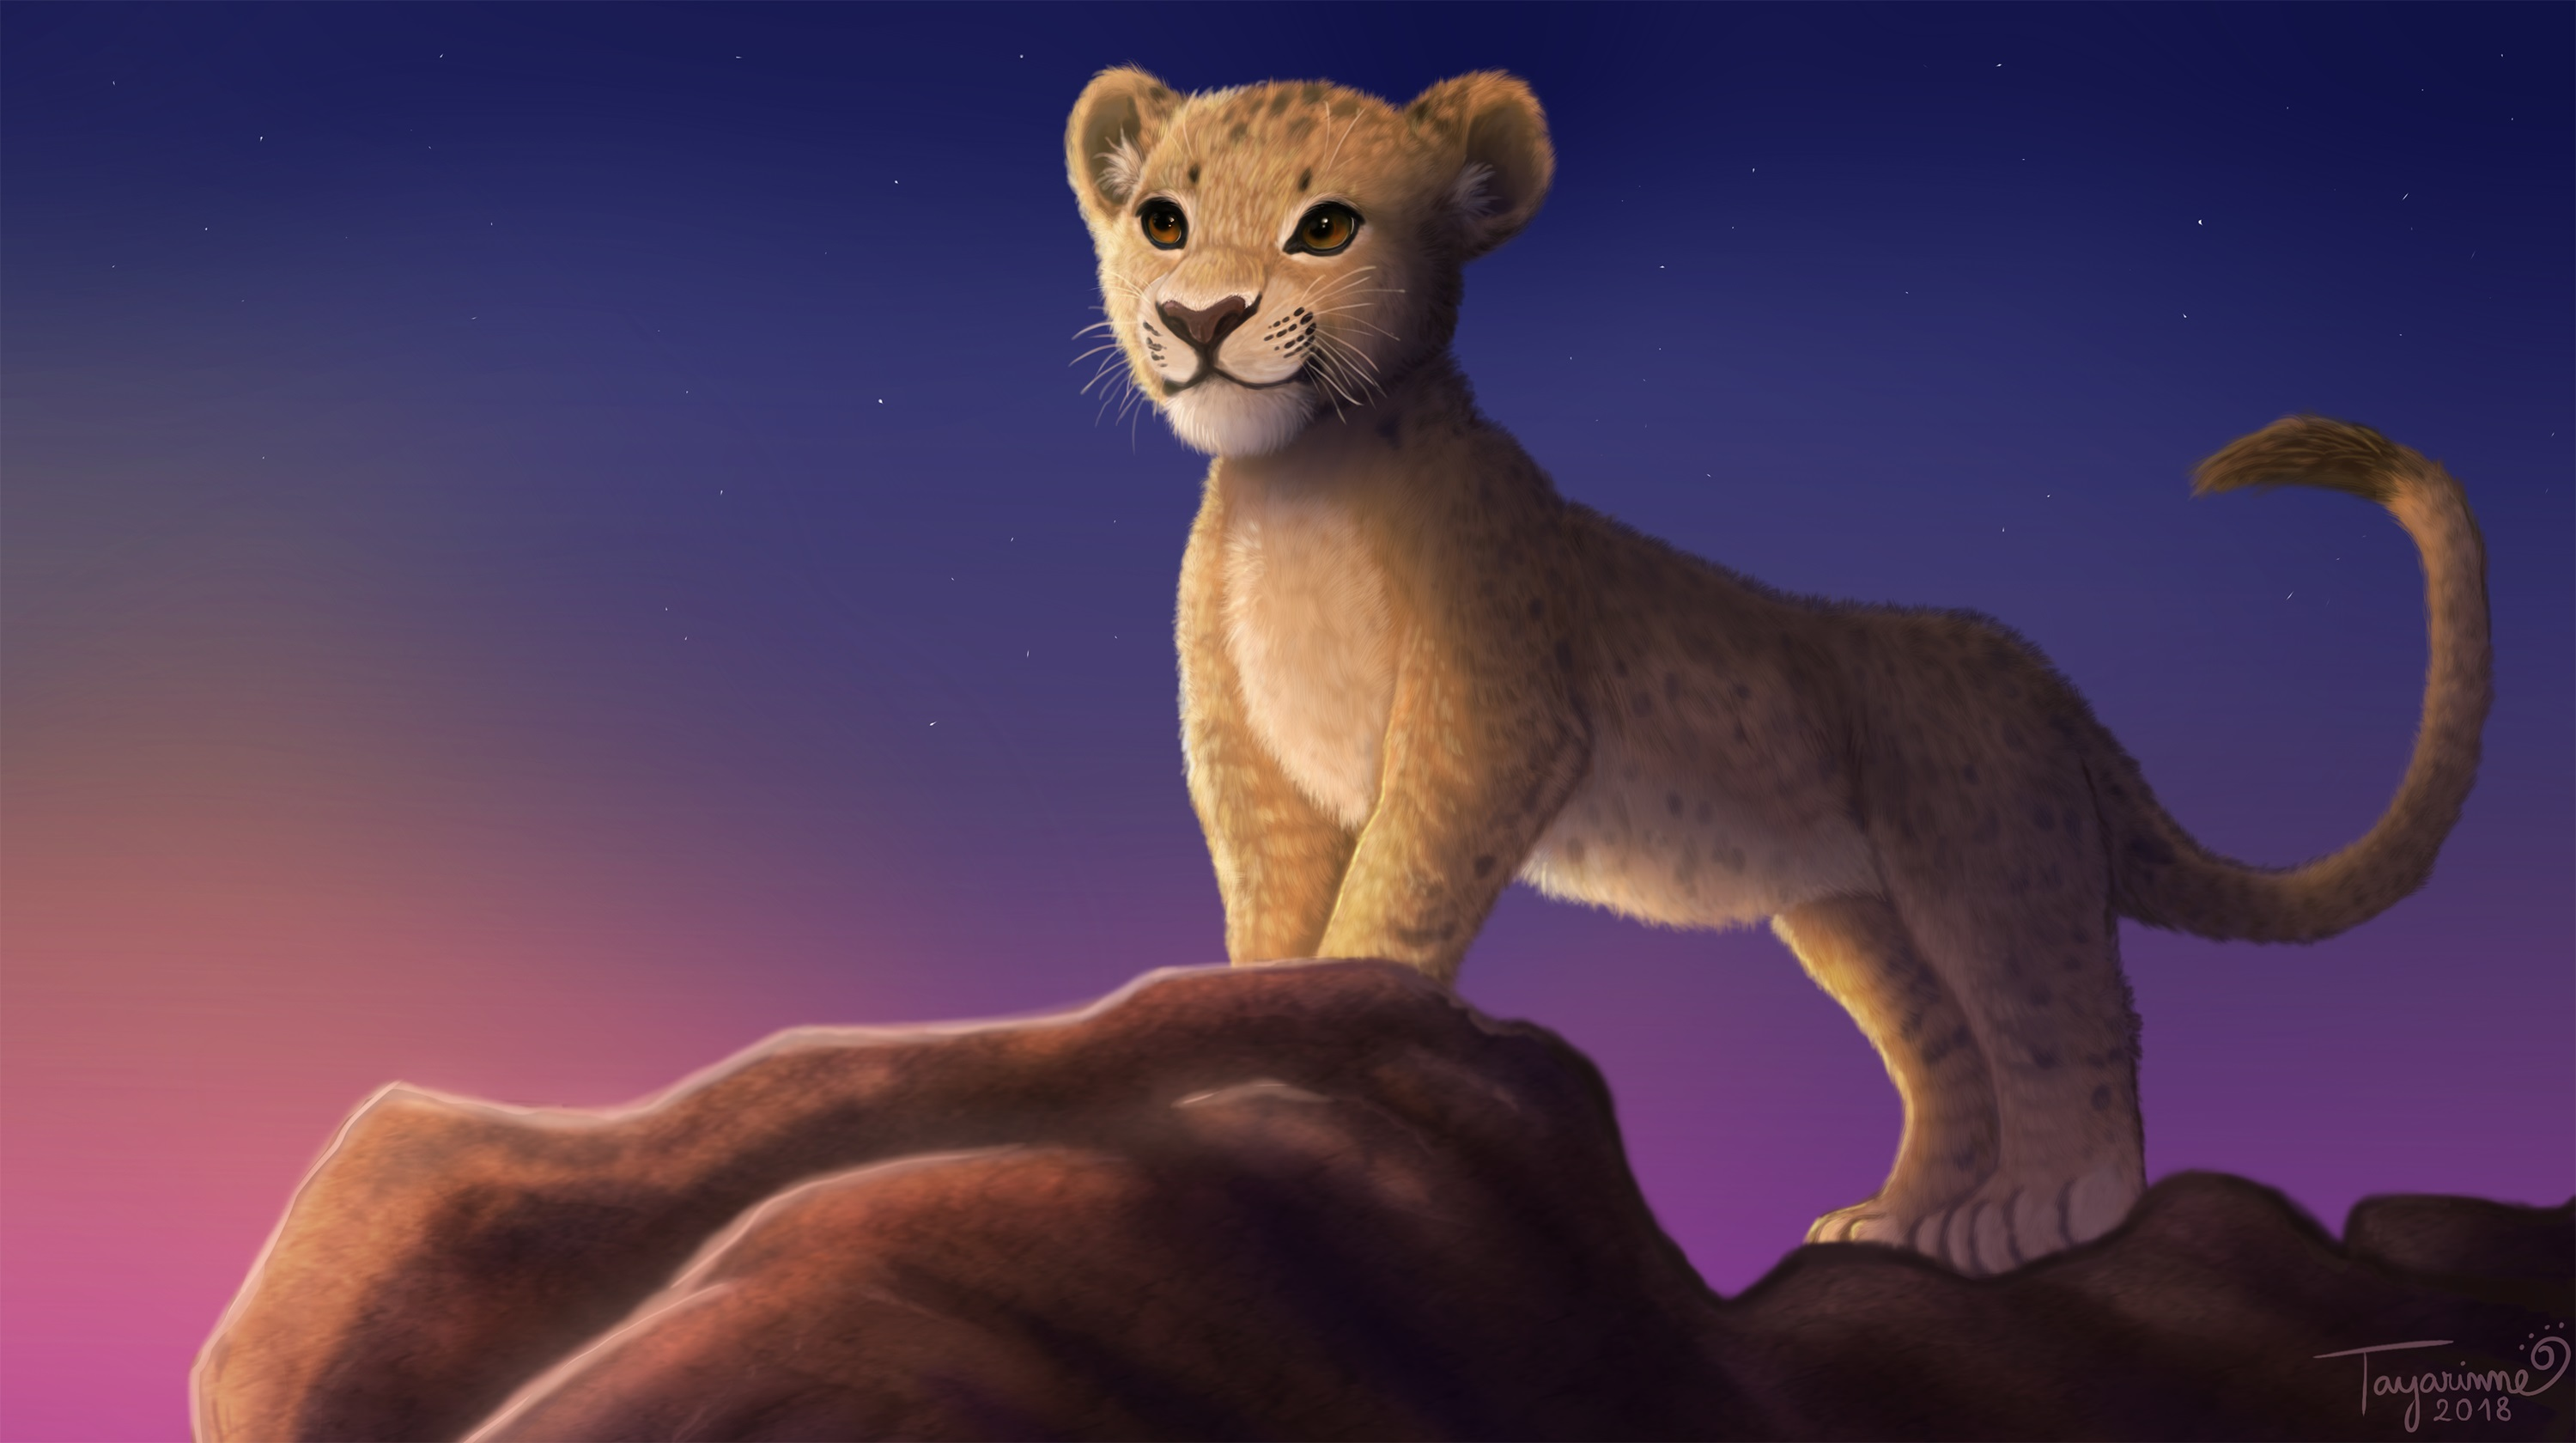 The Lion King 2019 The Lion King 2019 Photo 42723133